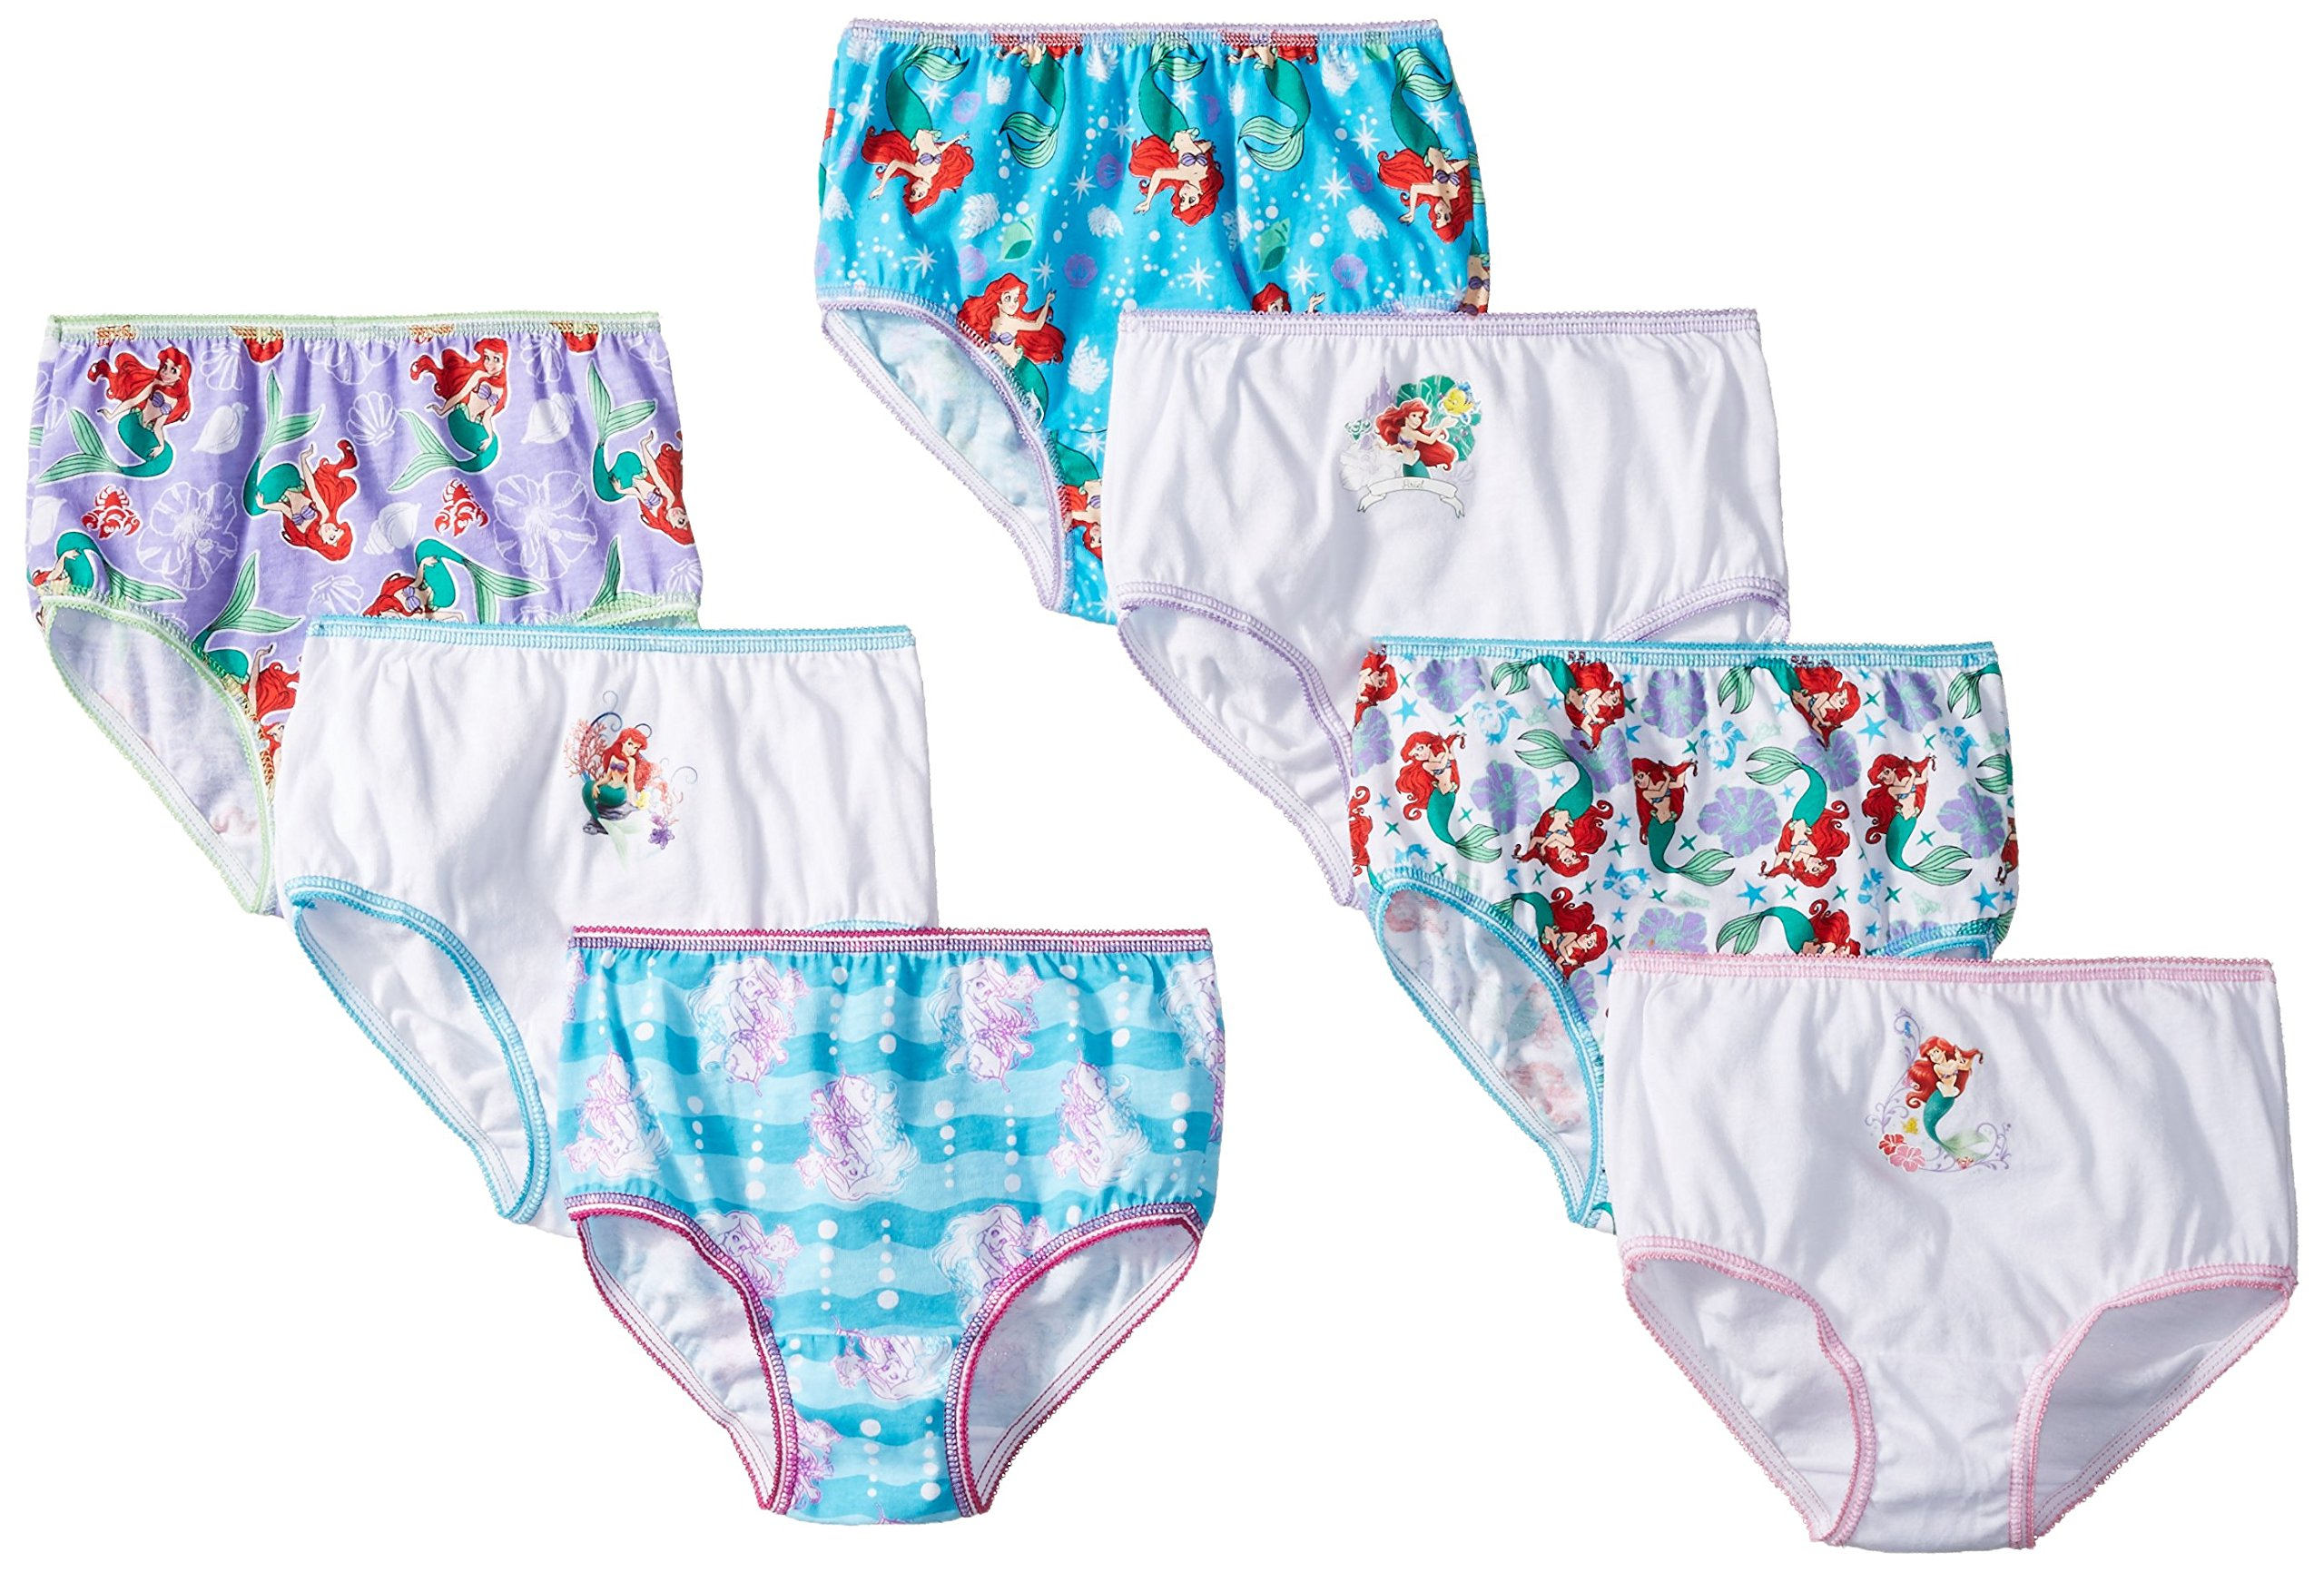 Disney Toddler Girls' Ariel 7pk Panty, Assorted, 2T/3T